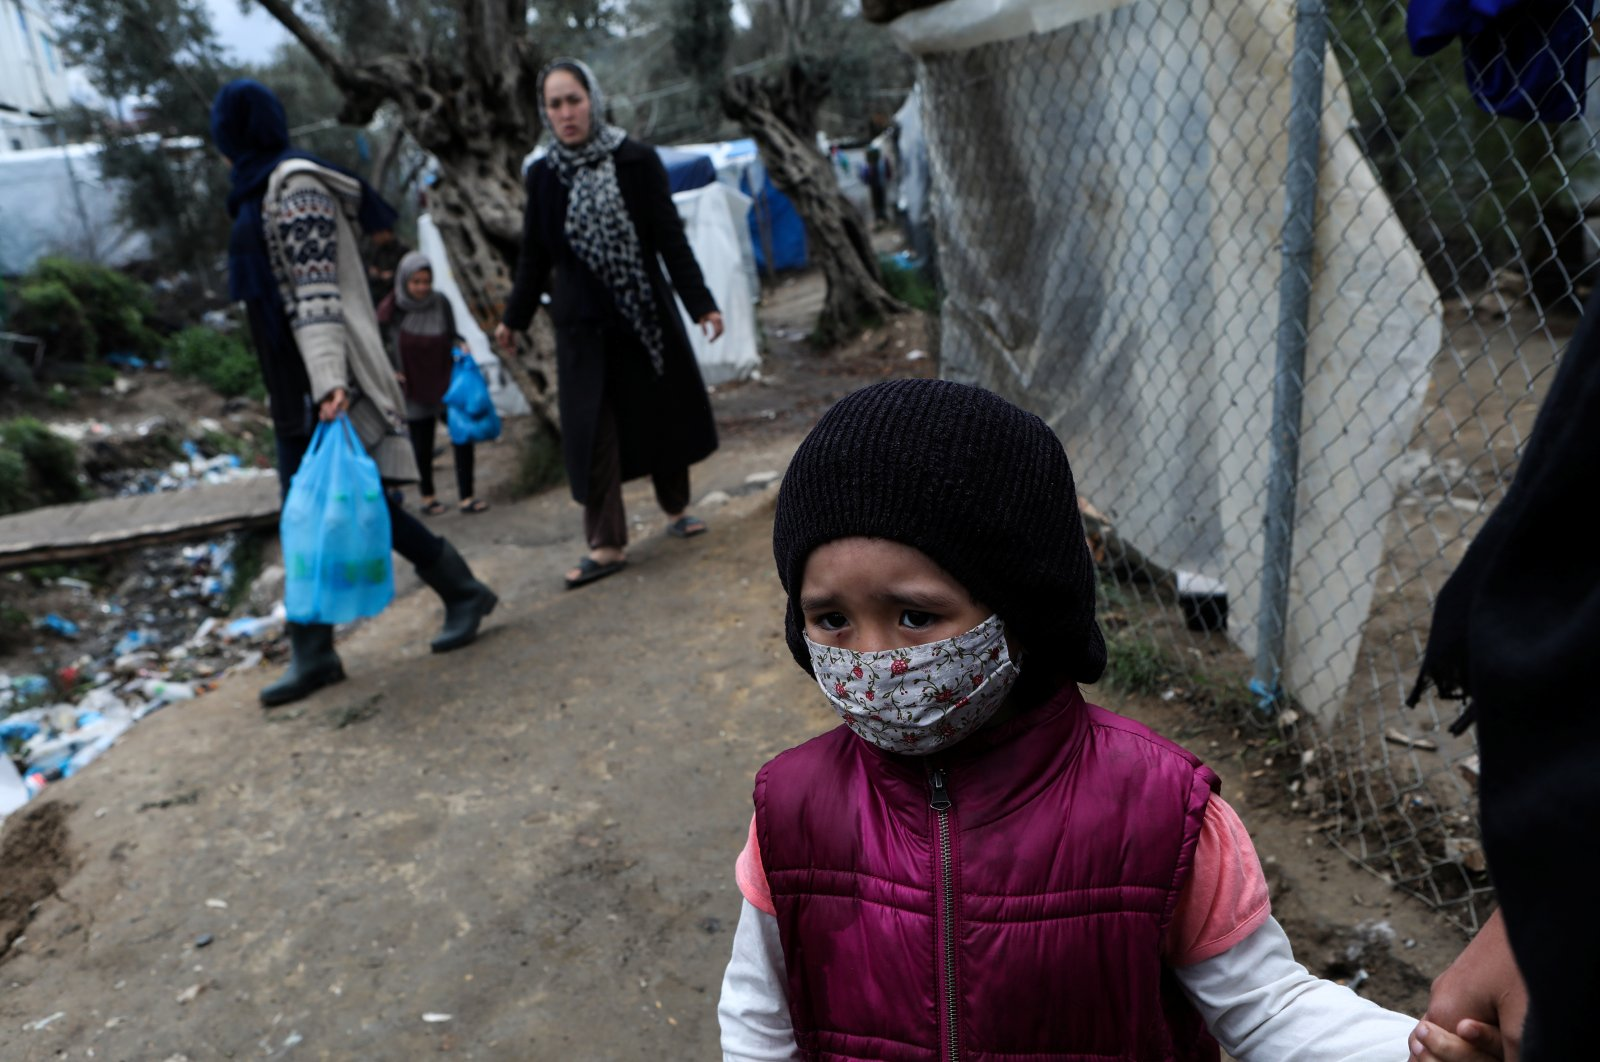 A girl wears a protective face mask at a makeshift camp for refugees and migrants next to the Moria camp, during a nationwide lockdown to contain the spread of the coronavirus disease, on the island of Lesbos, Greece, Thursday, April 2, 2020. REUTERS